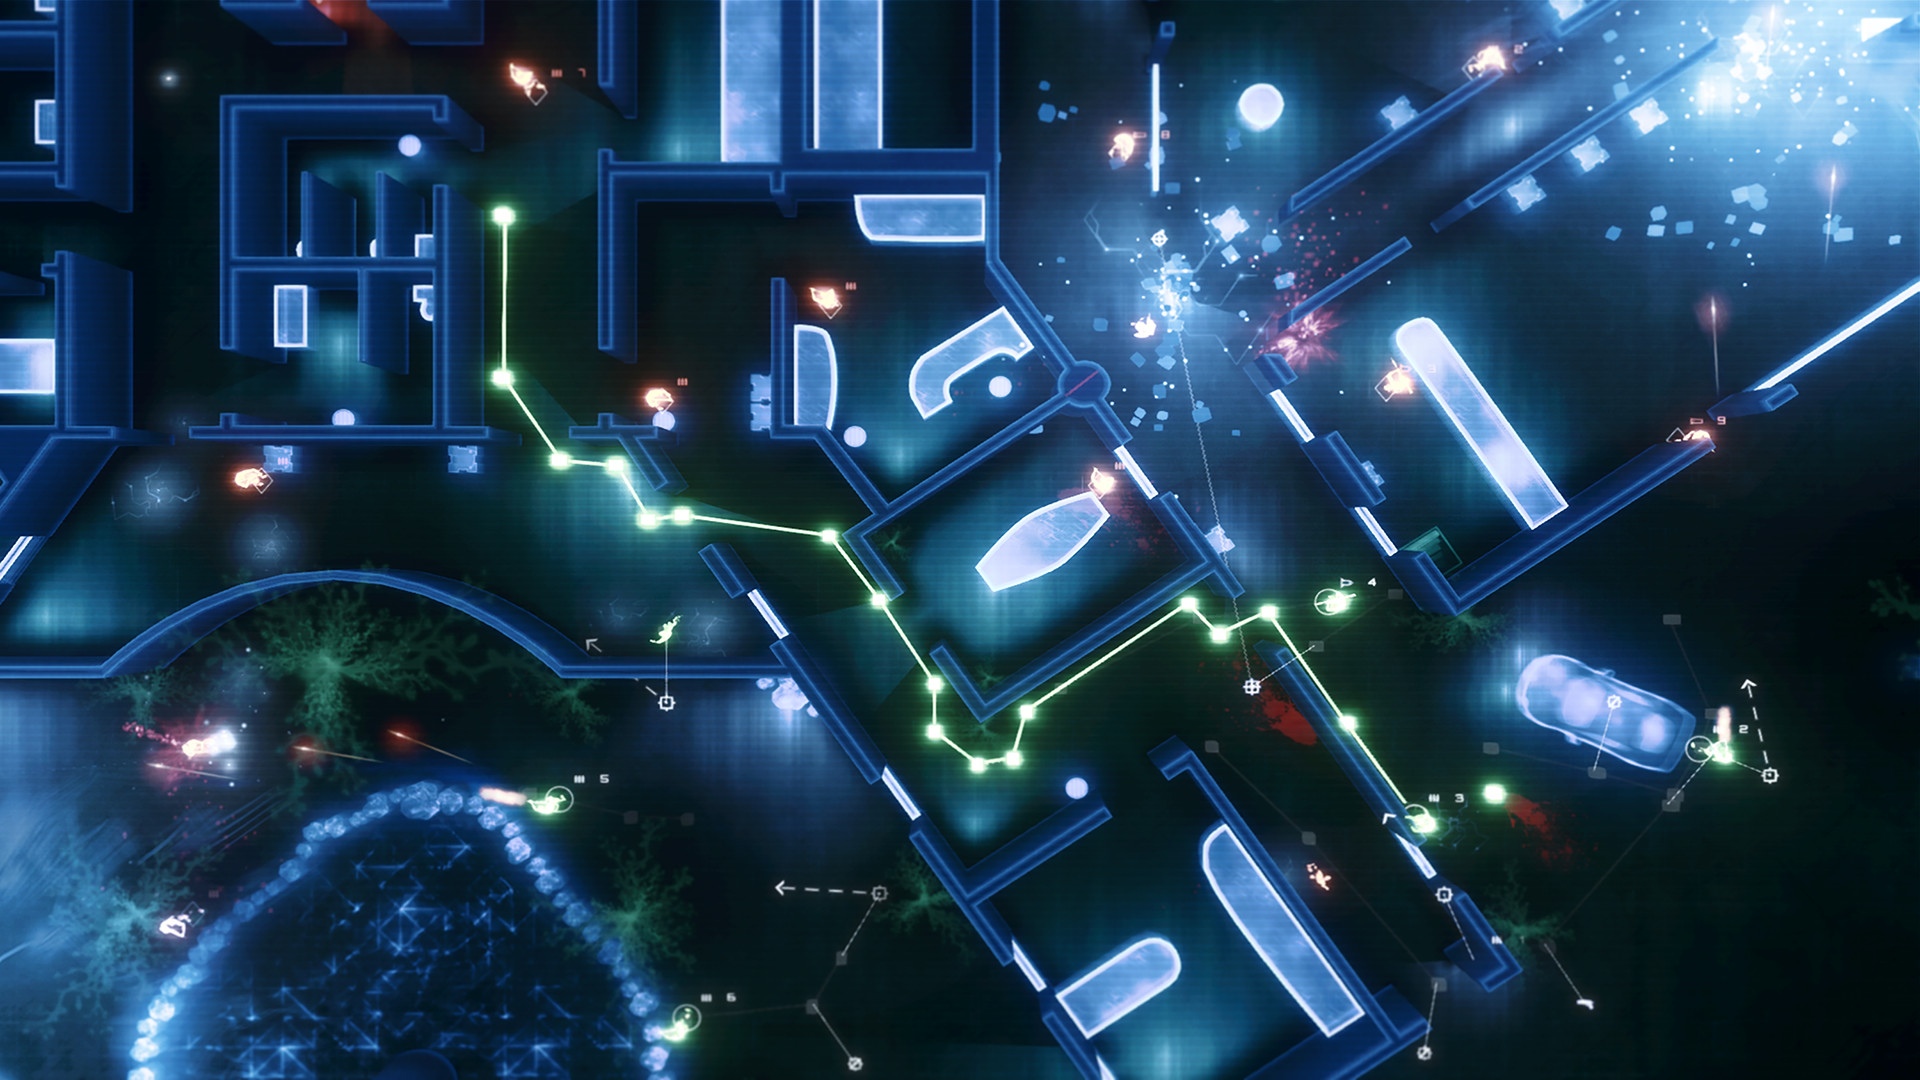 Frozen Synapse 2 explores neat new features at the PC Gamer